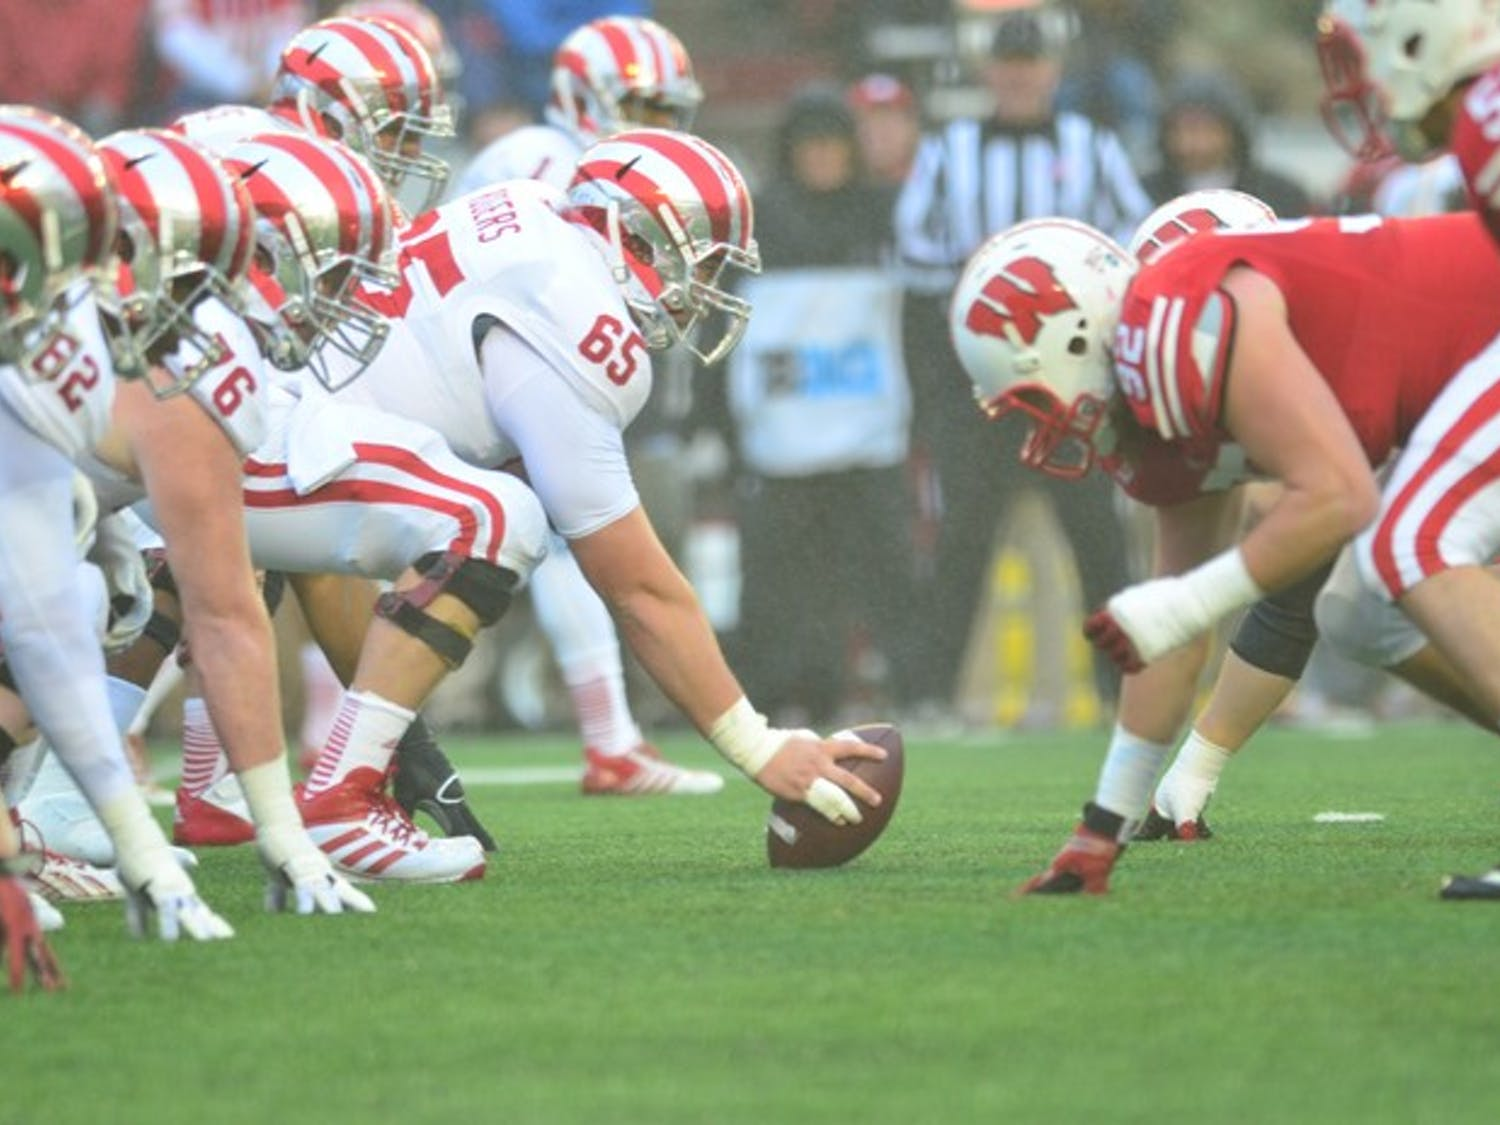 The Badgers won in convincing fashion, 51-3 after a rainy morning at Camp Randall.